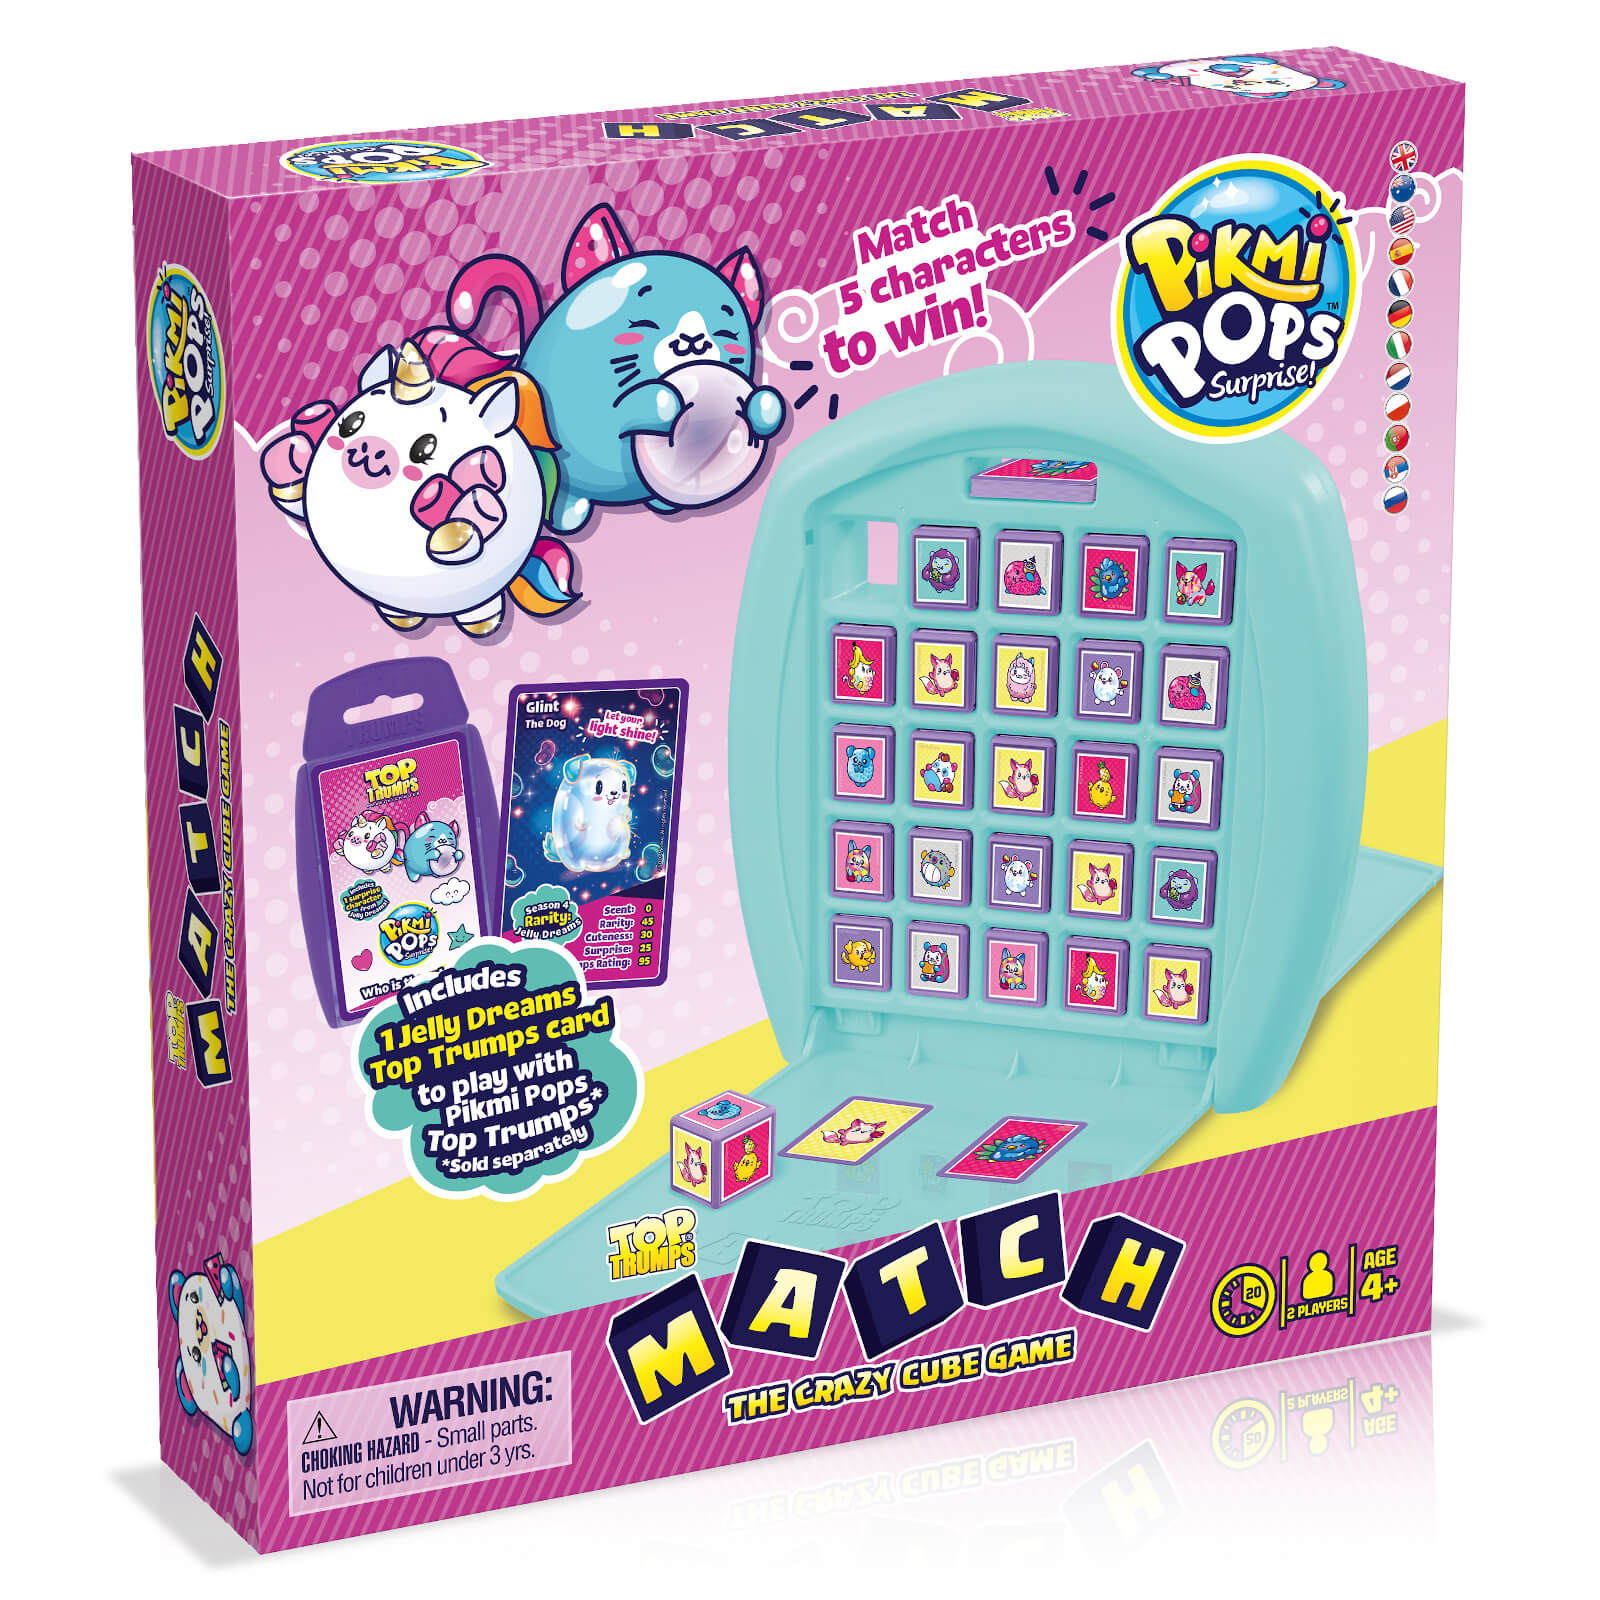 Image of Top Trumps Match Board Game - Pikmi Pops Edition